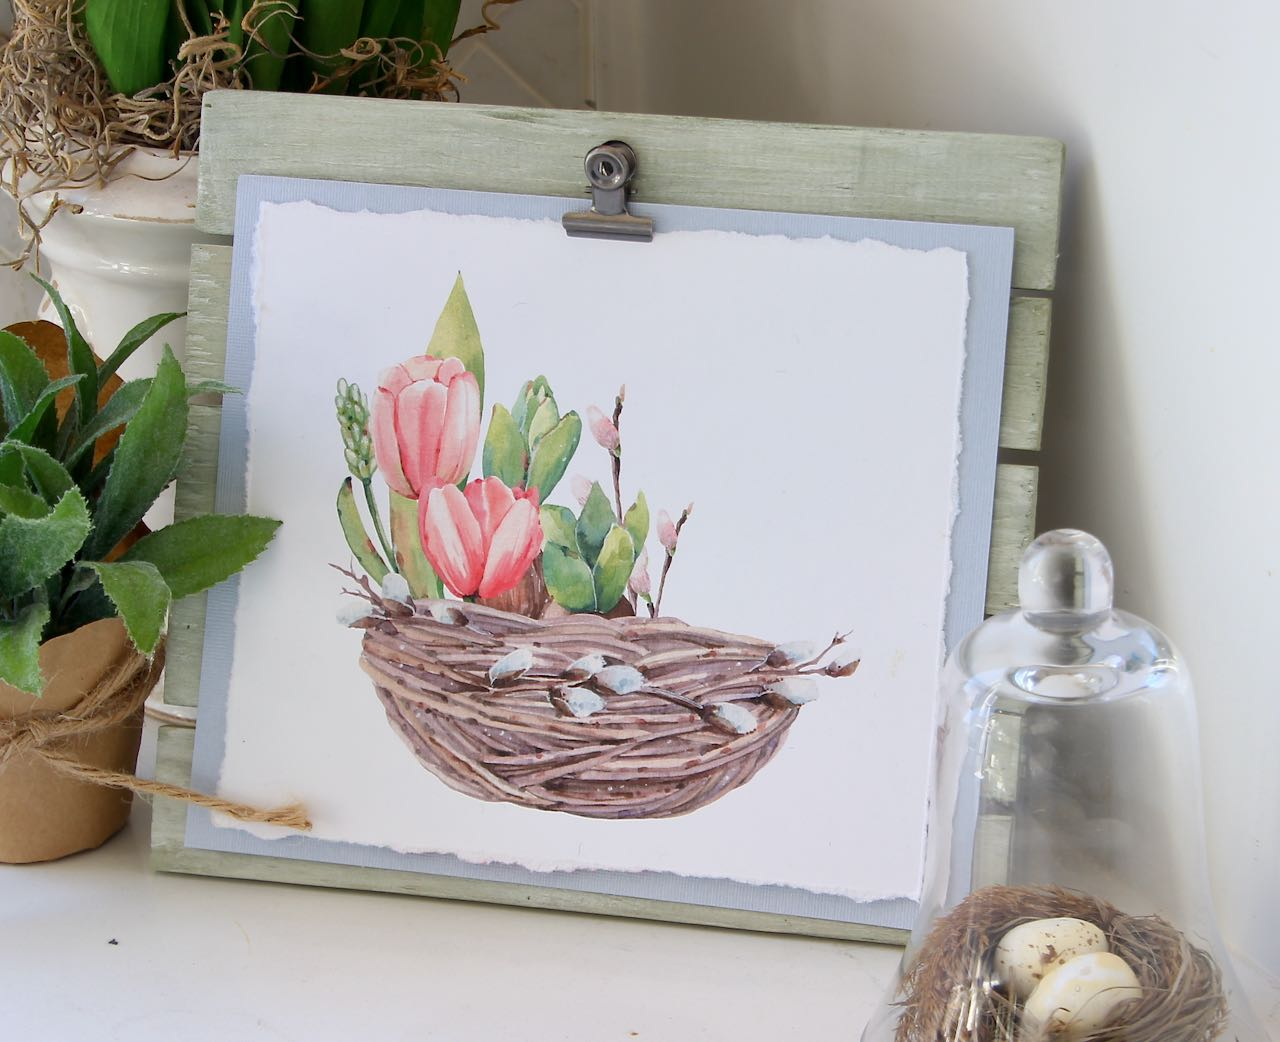 Nest with flower bulbs growing out of it on green washed easel